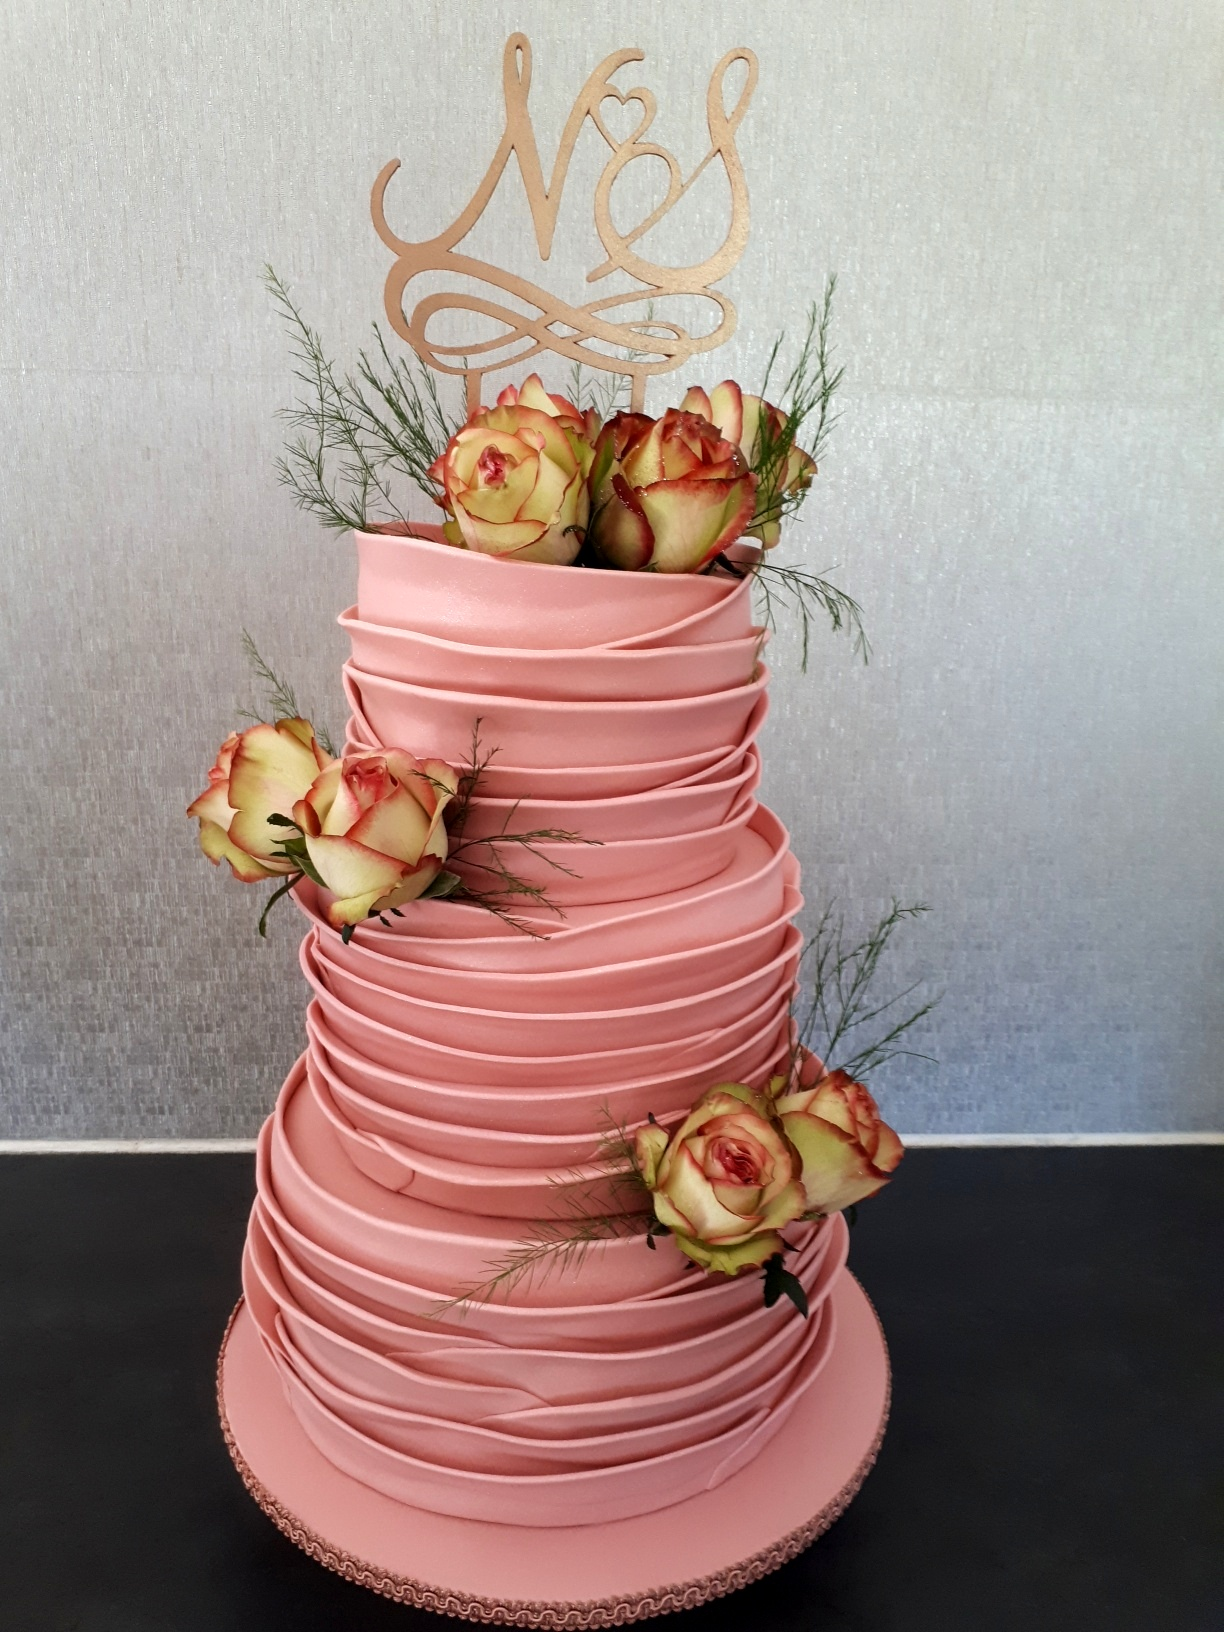 Wedding Cakes | Exquisite Cakes